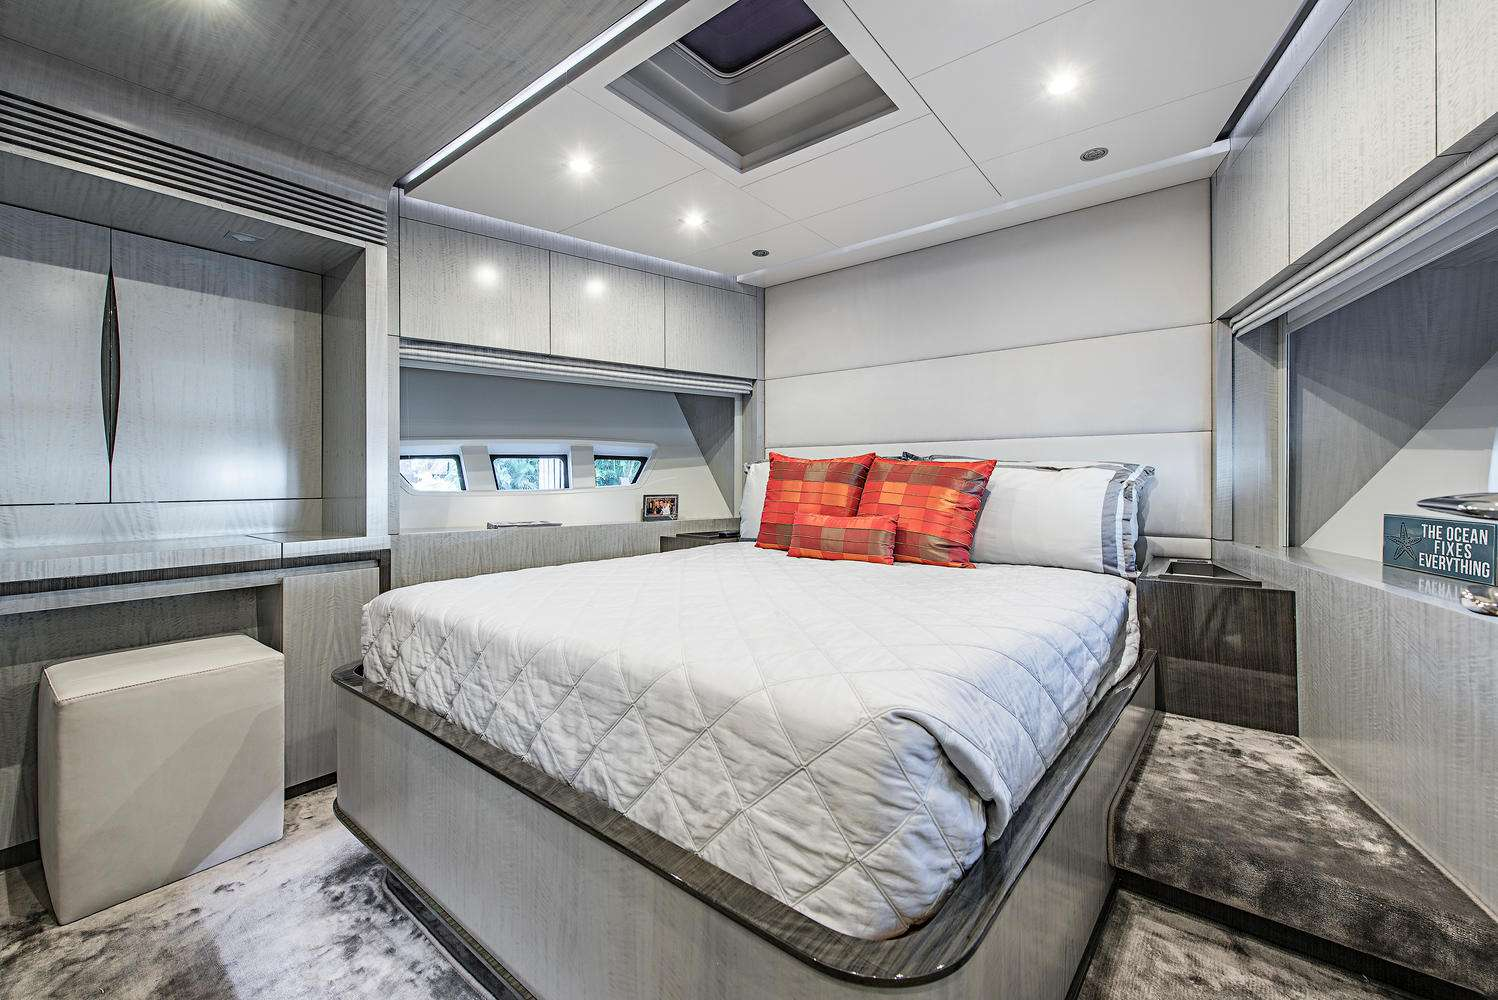 The VIP forward cabin features a queen bed, plenty of storage space and plush soft goods and carpeting.